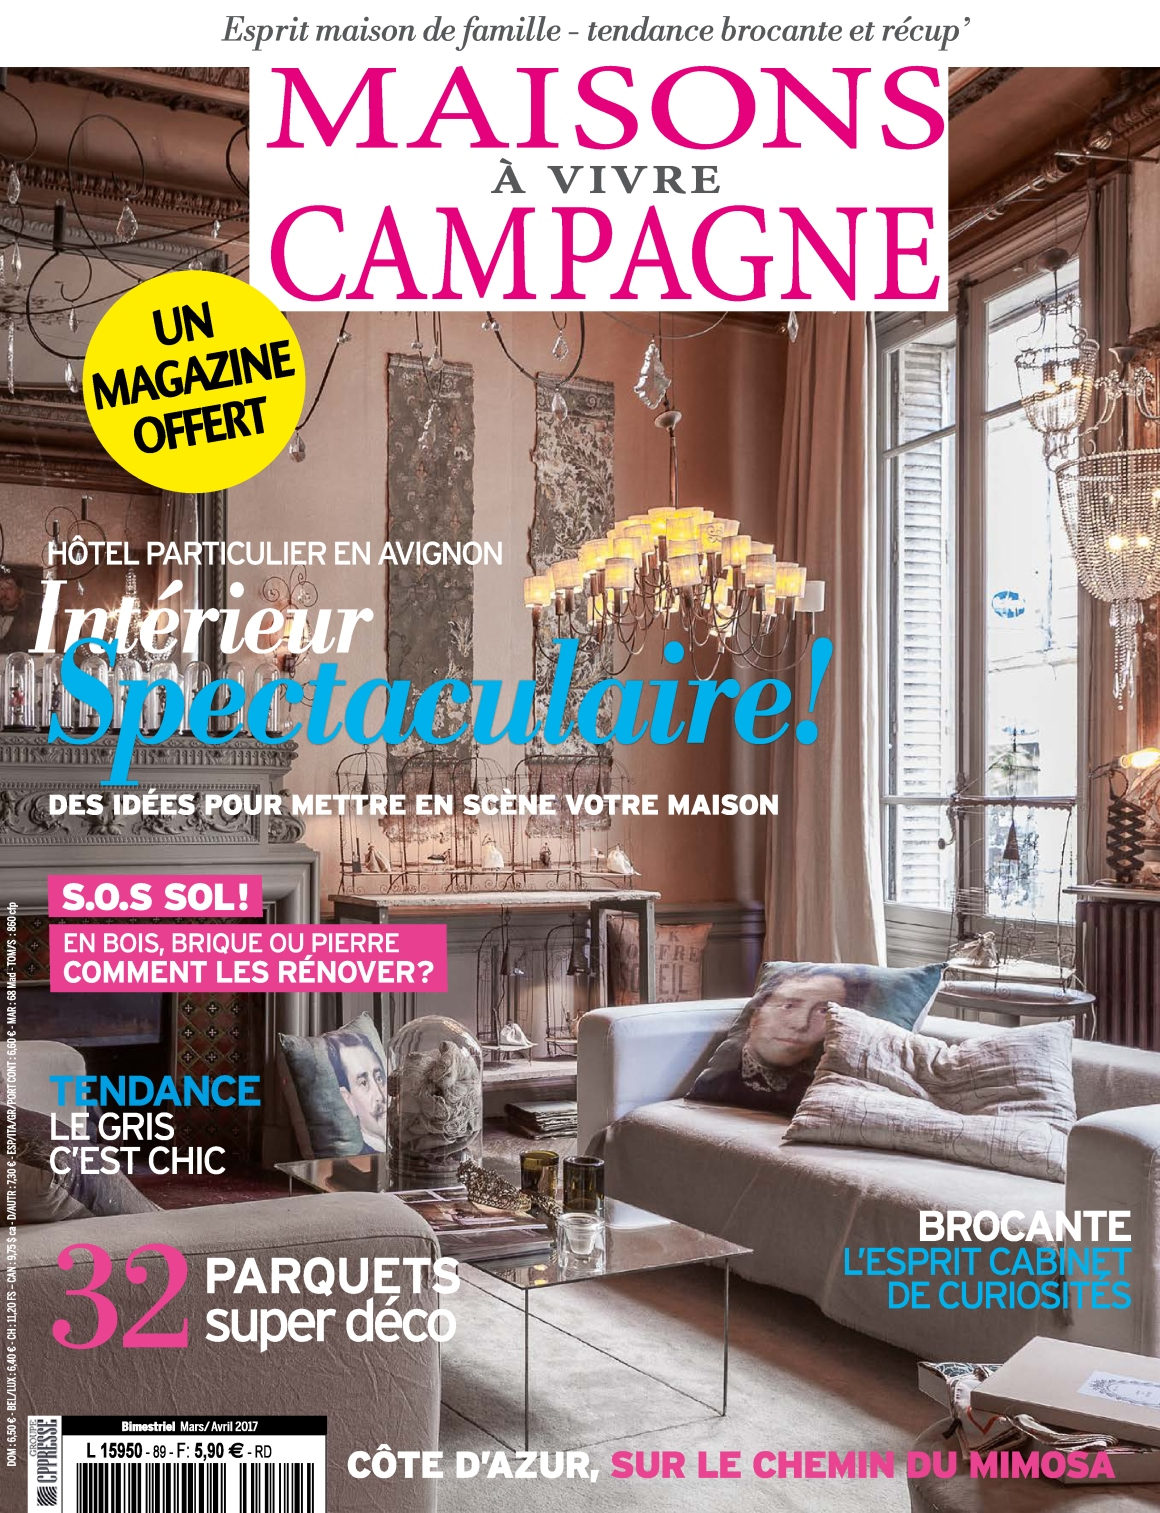 telecharger maisons vivre campagne n 89 mars avril 2017 en torrent. Black Bedroom Furniture Sets. Home Design Ideas